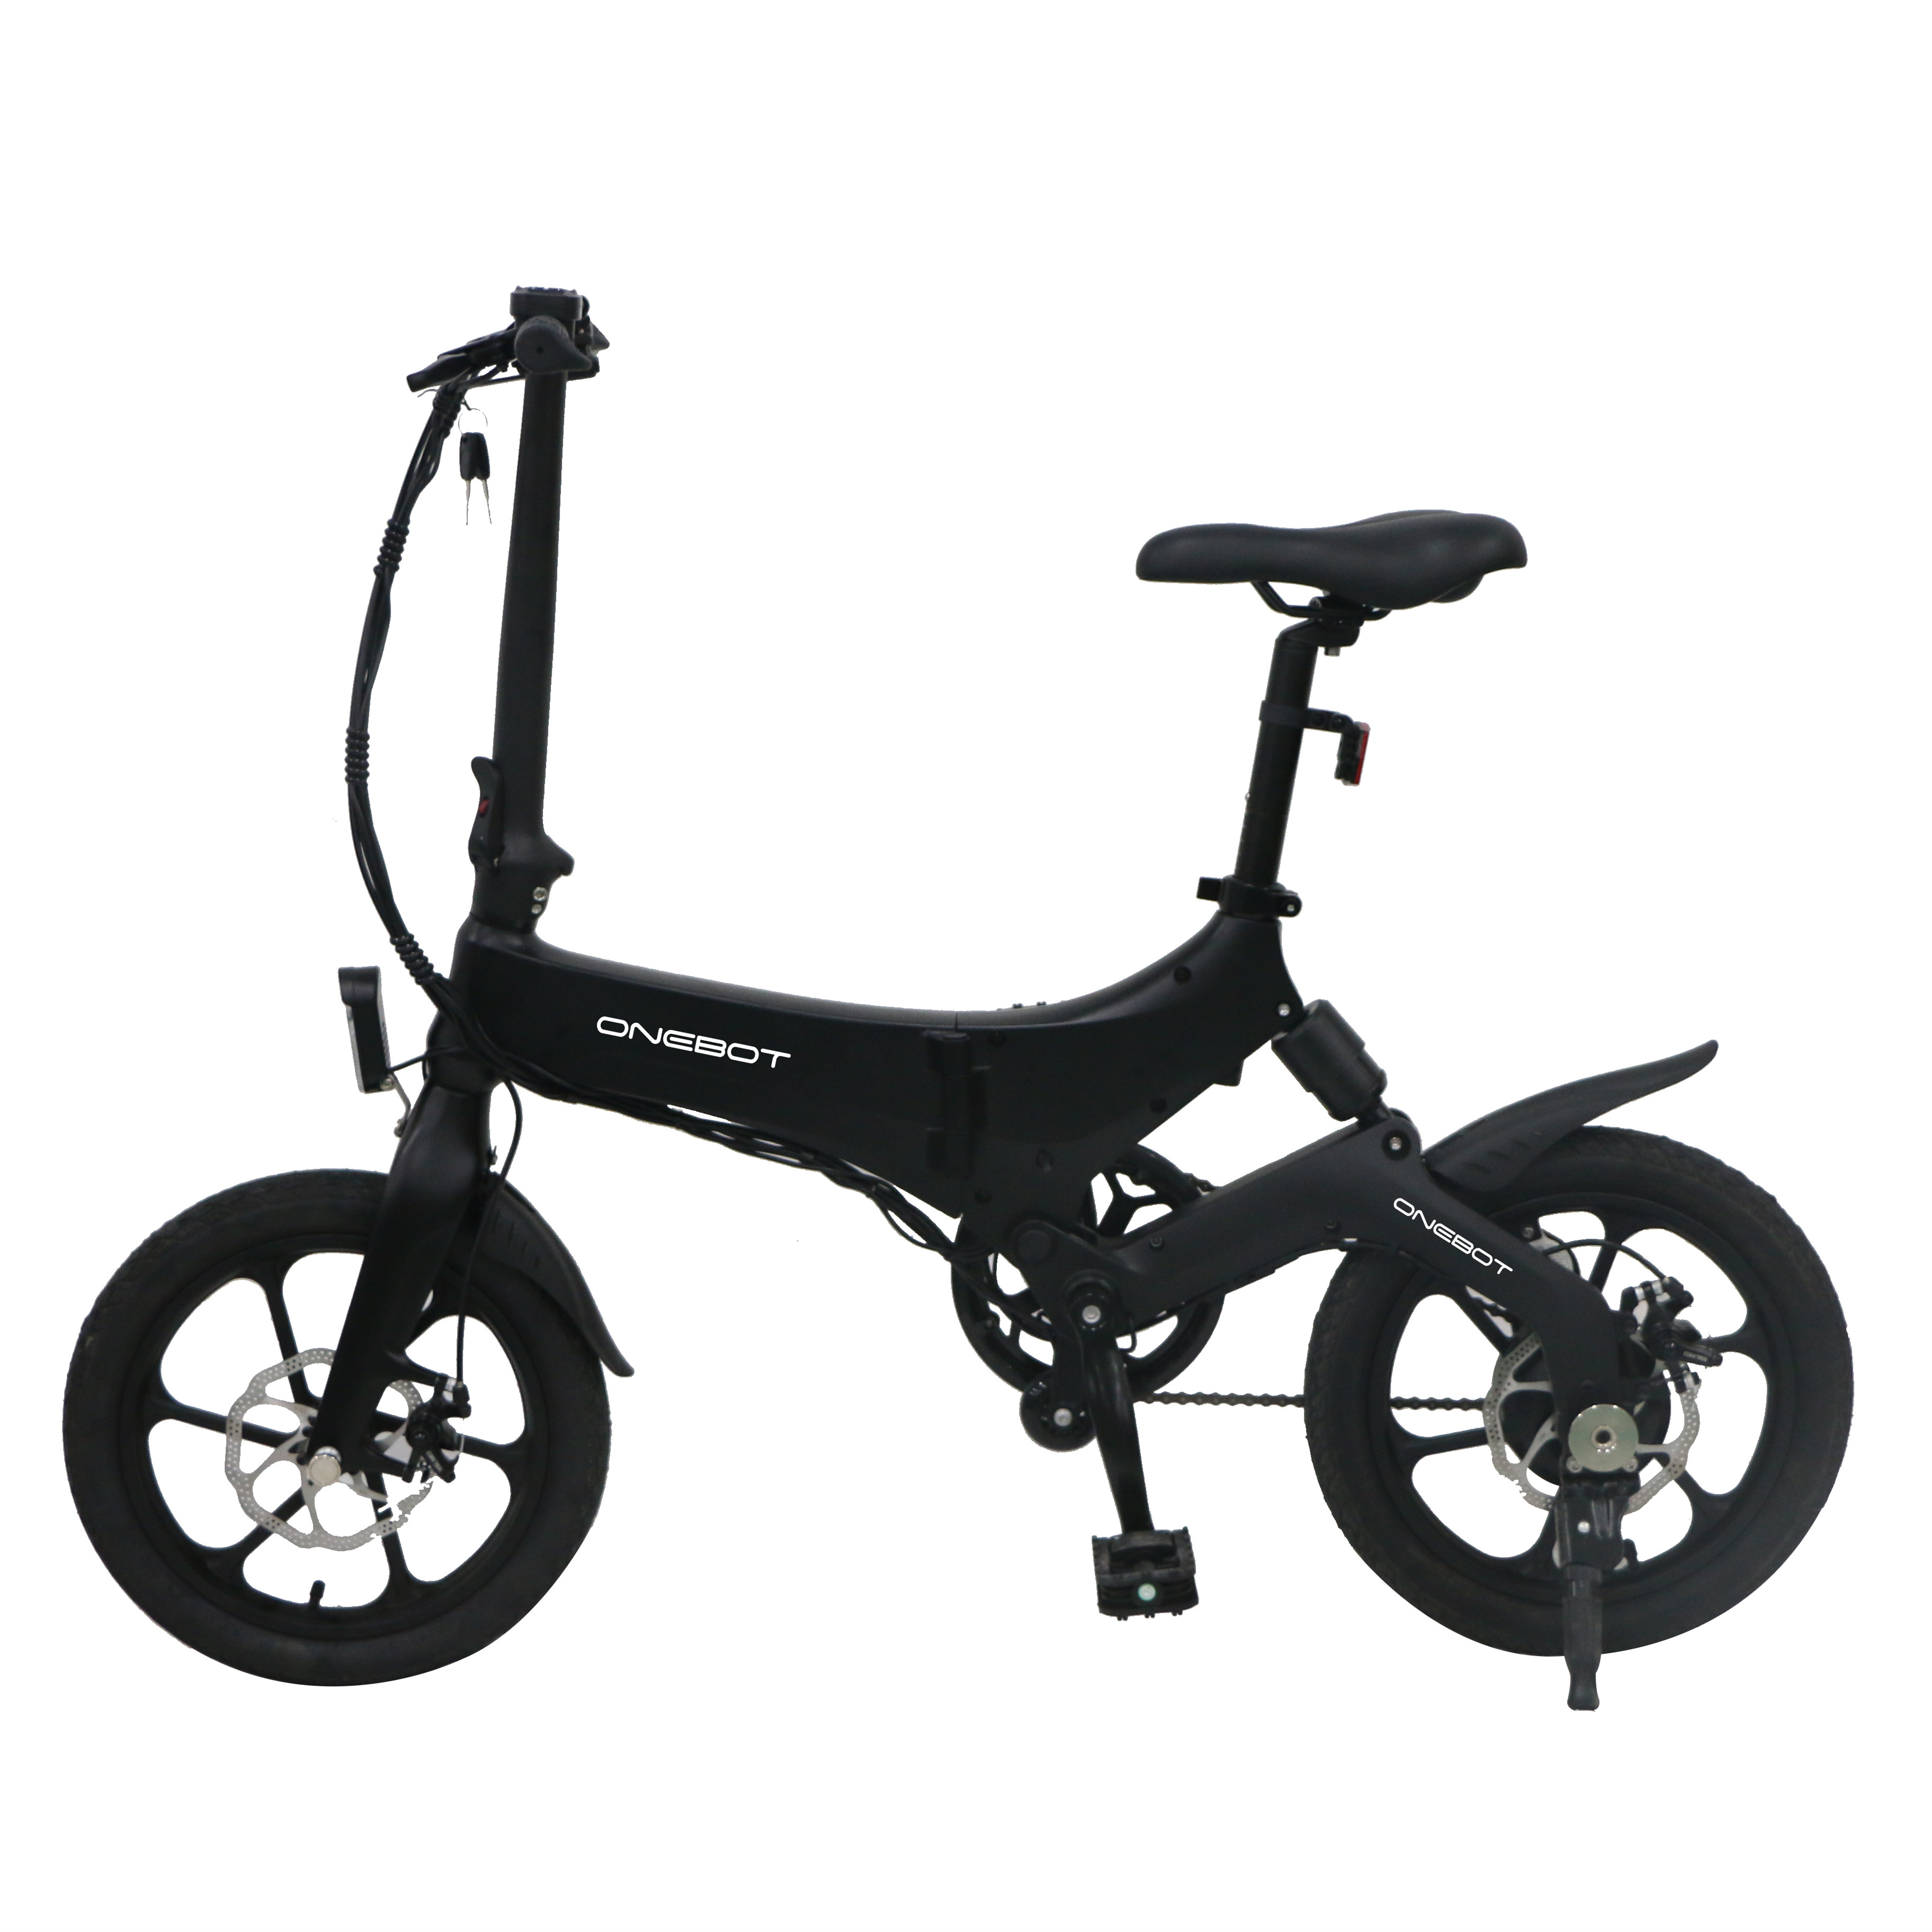 [EU Direct] ONEBOT S6 Electric Bike Foldable Bicycle Variable Speed City E-bike 250W Motor 6.4Ah Battery Max 25Km/h Max Load 120kg black